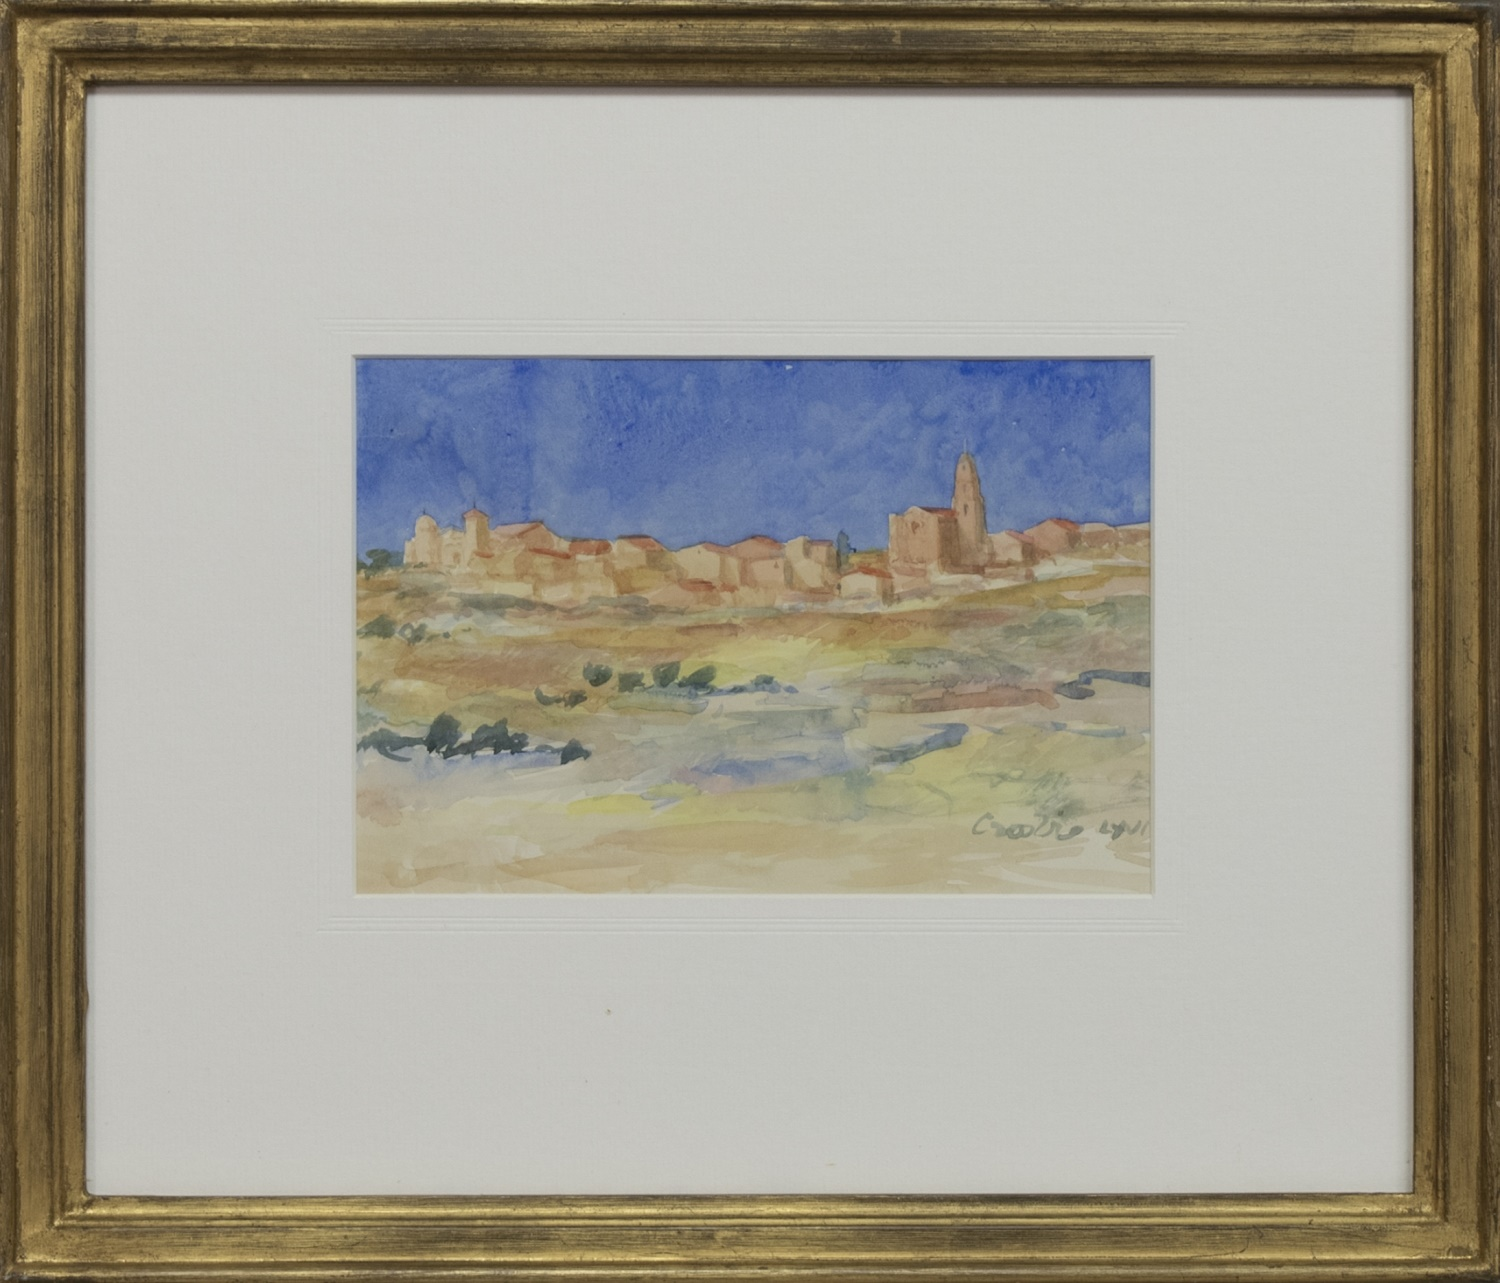 NEAR VALLADOLID, SPAIN, A WATERCOLOUR BY WILLIAM CROSBIE